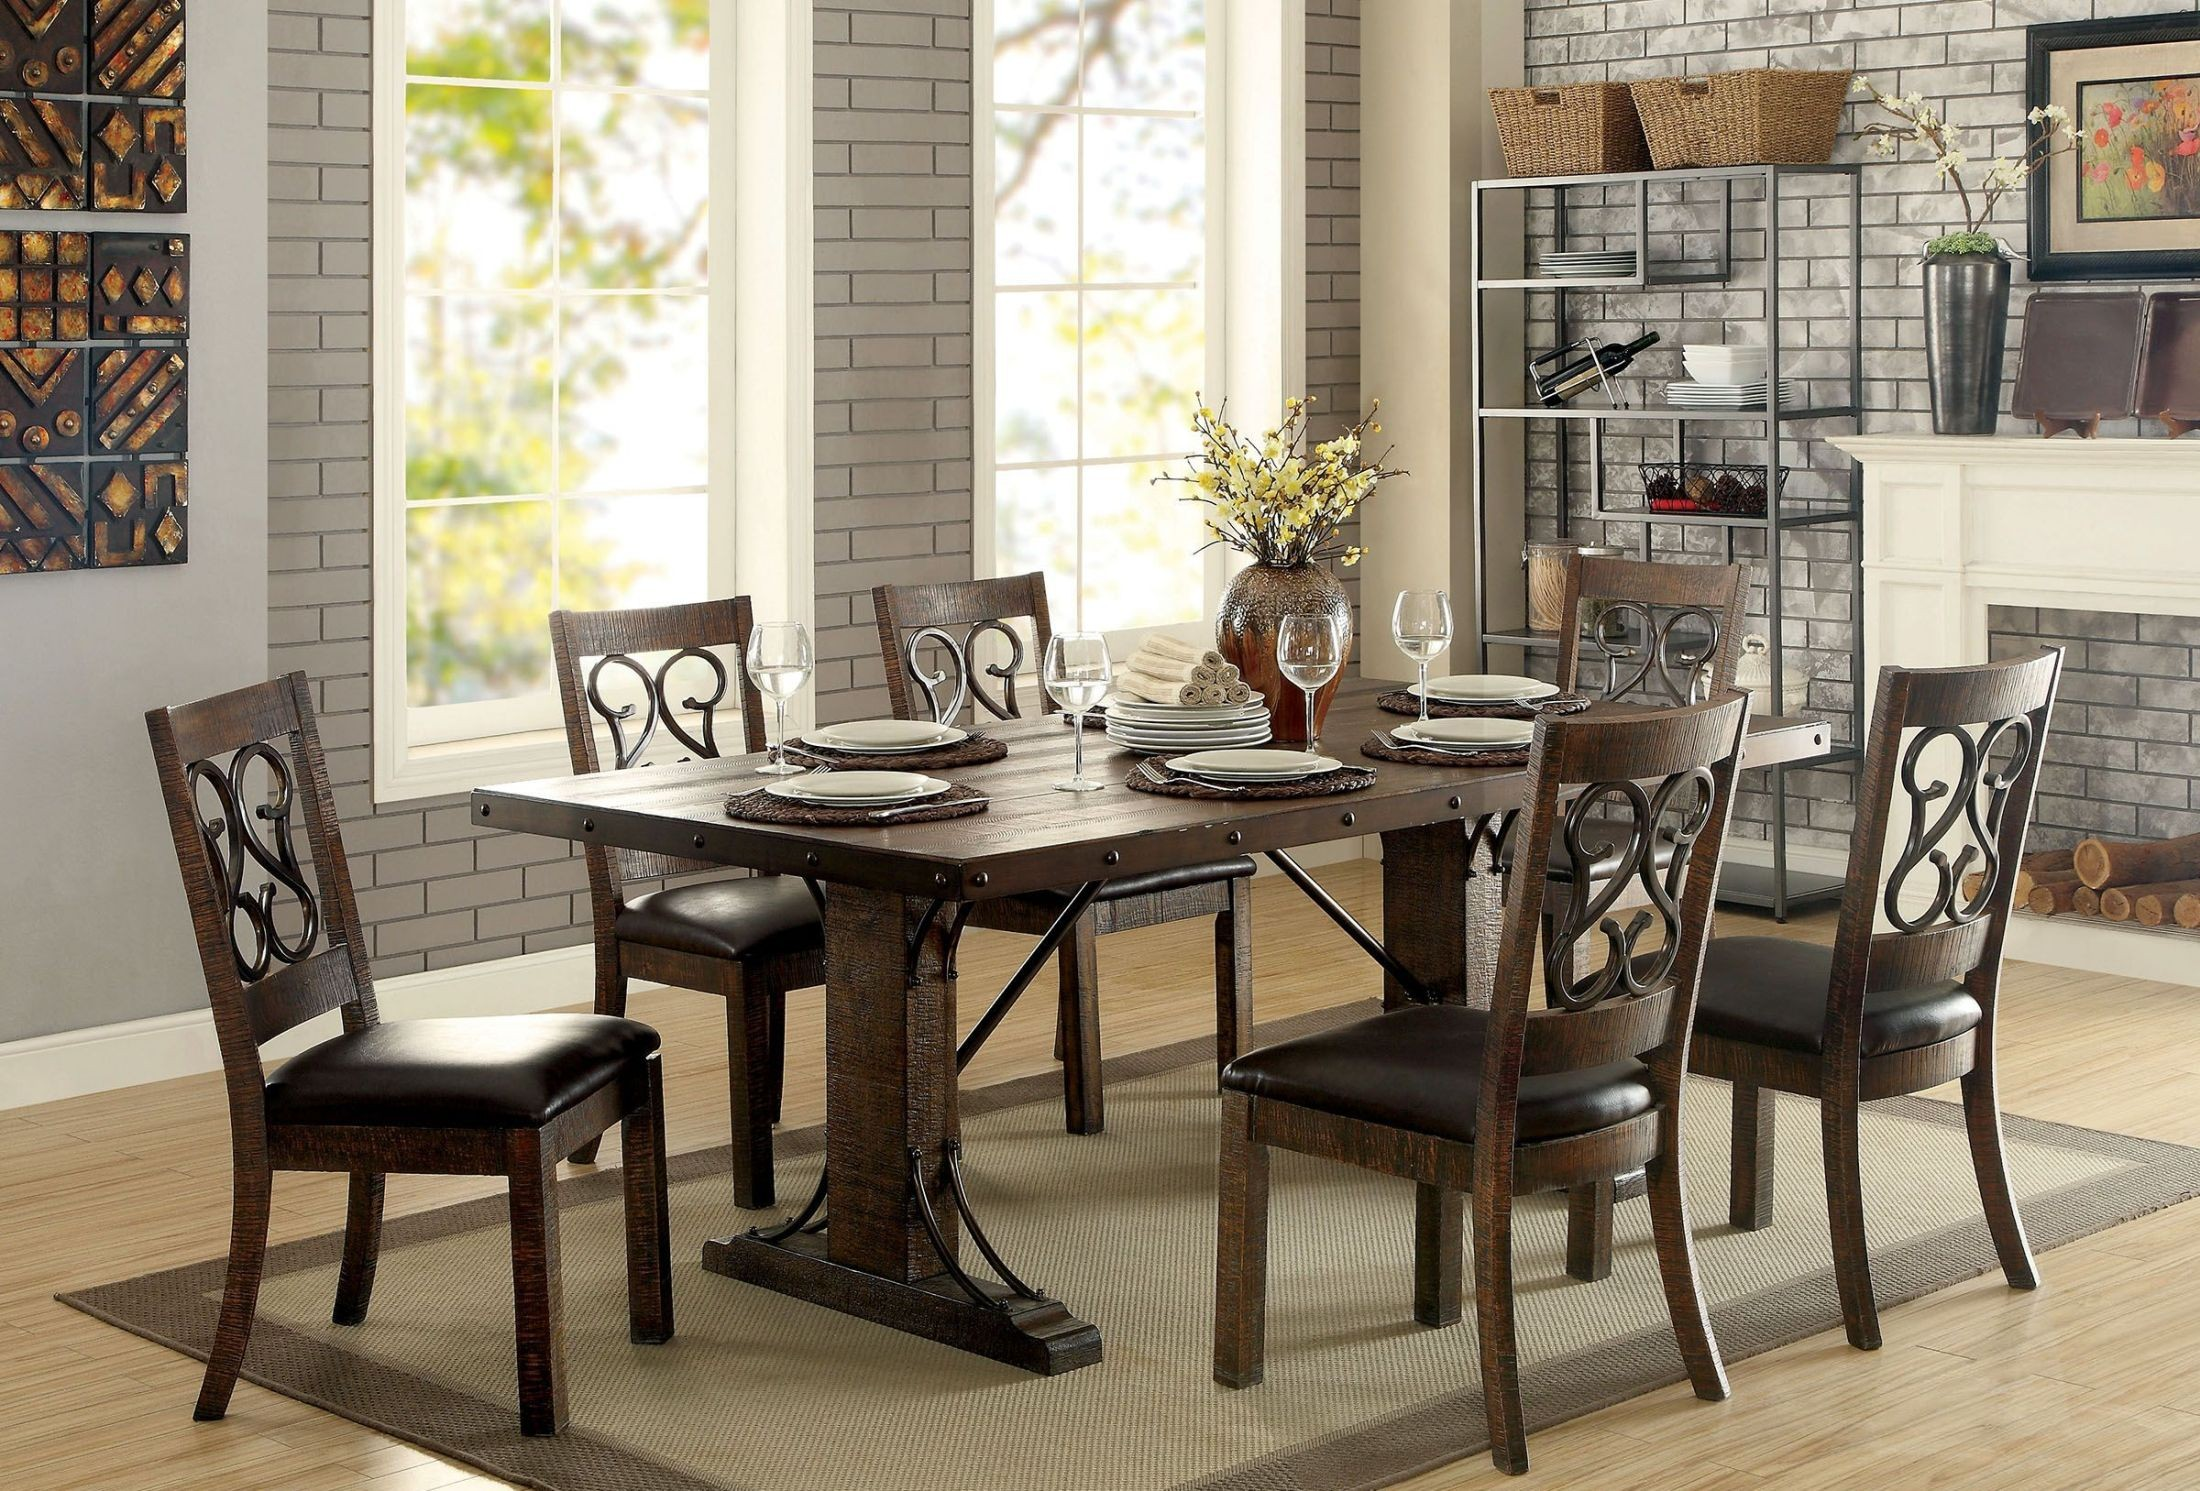 paulina rustic walnut rectangular dining room set from furniture of america coleman furniture. Black Bedroom Furniture Sets. Home Design Ideas